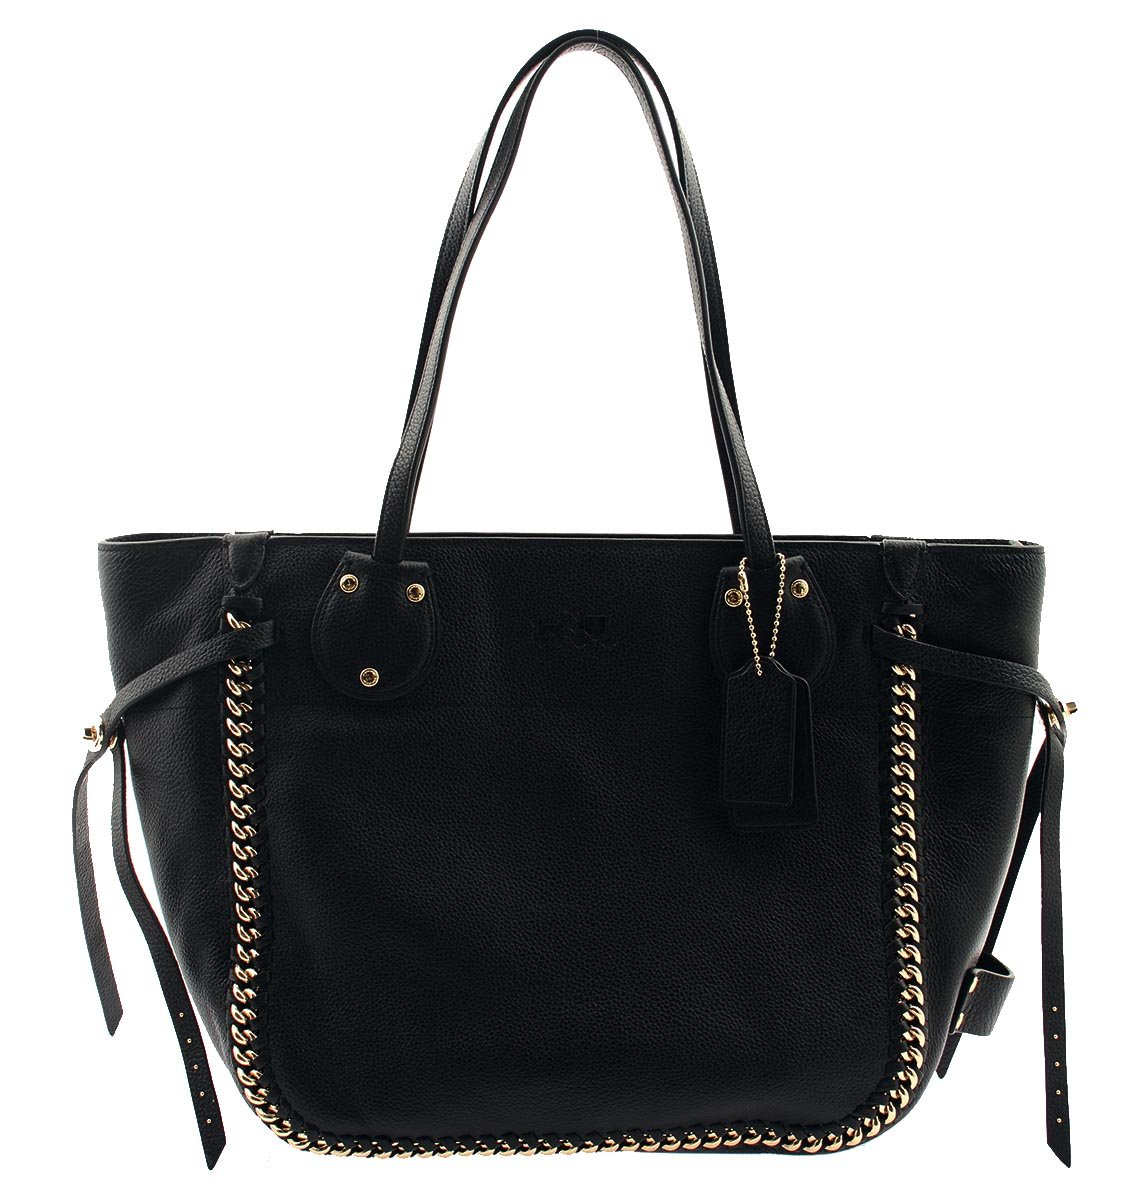 COACH Tatum Tote in Whiplash Leather Black Shoulder Bag, F34398 by Coach